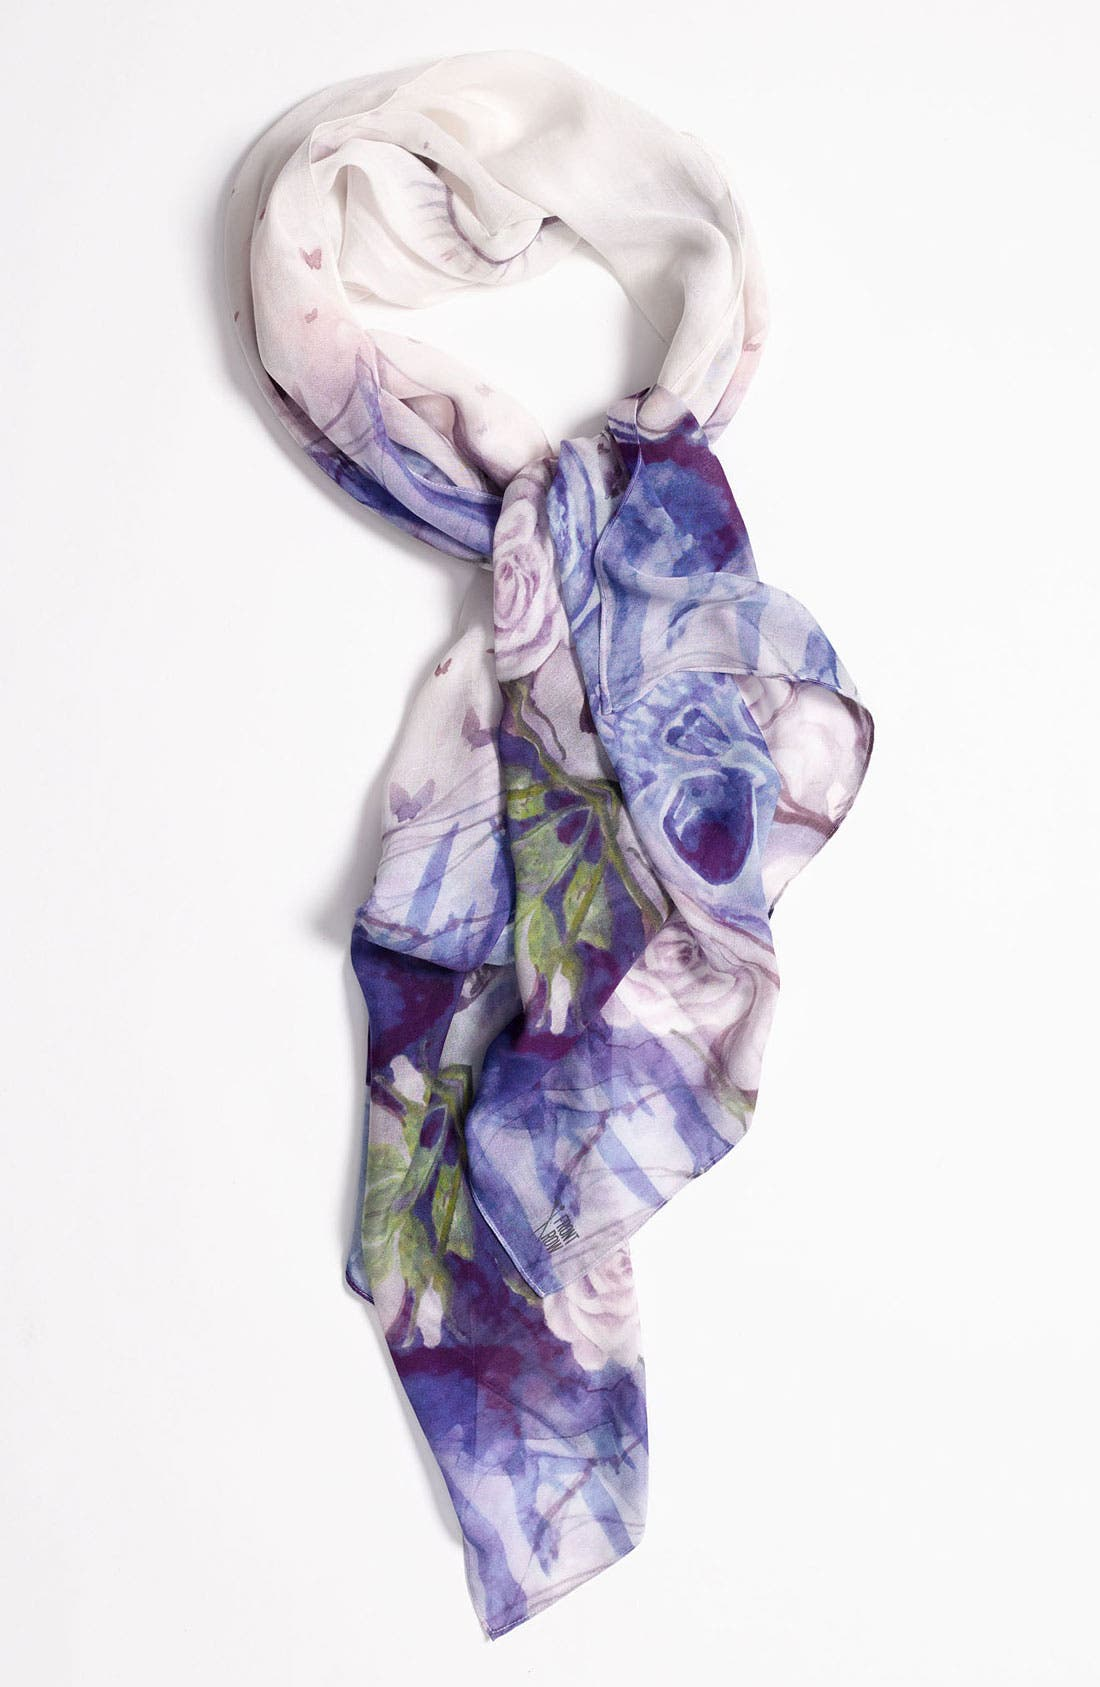 Alternate Image 1 Selected - Front Row Society 'Syncretic Cycle' Scarf